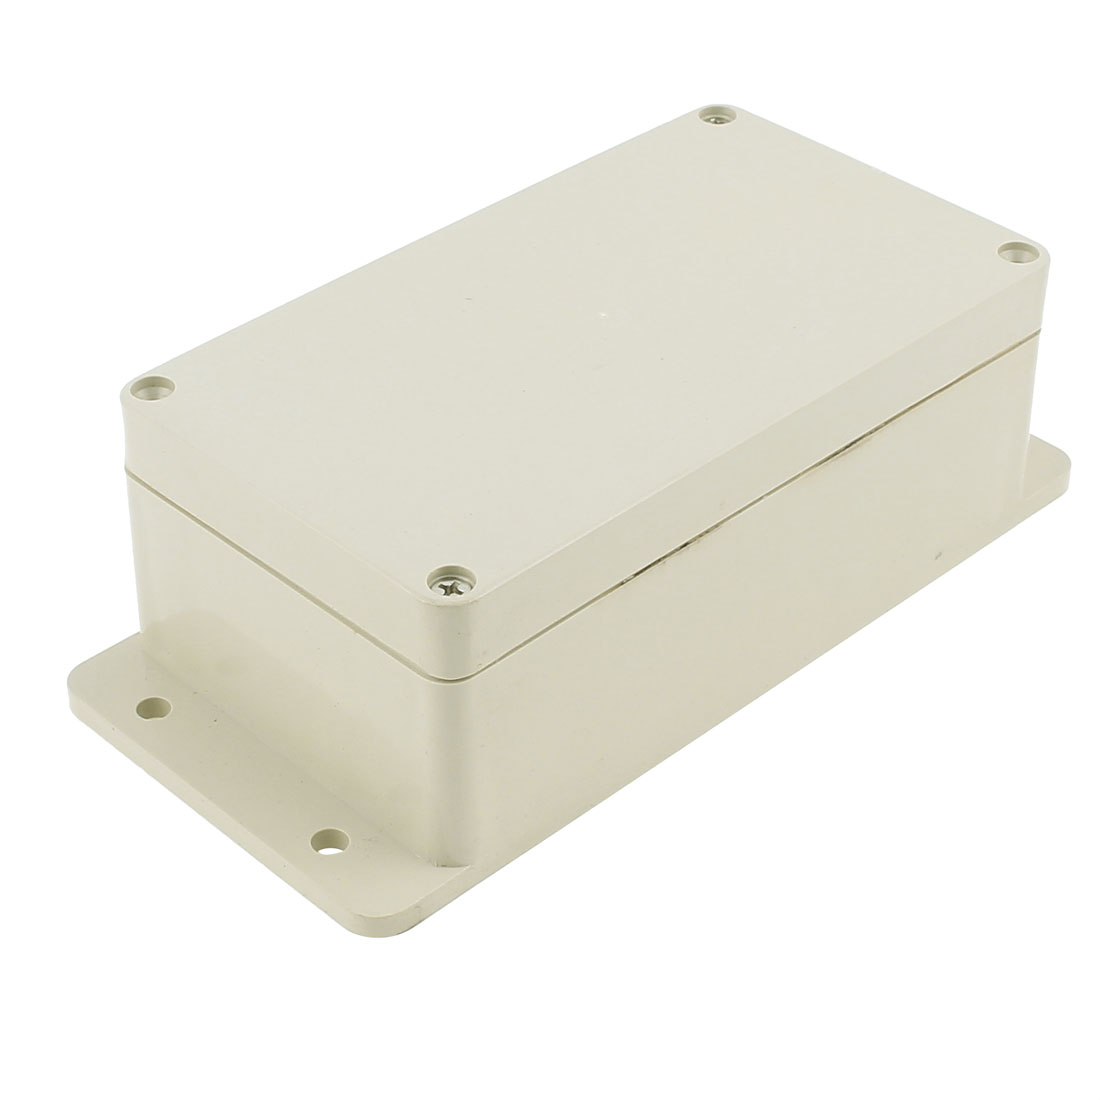 195 x 90 x 60mm Dustproof IP65 Junction Box Terminal Connecting Box Enclosure